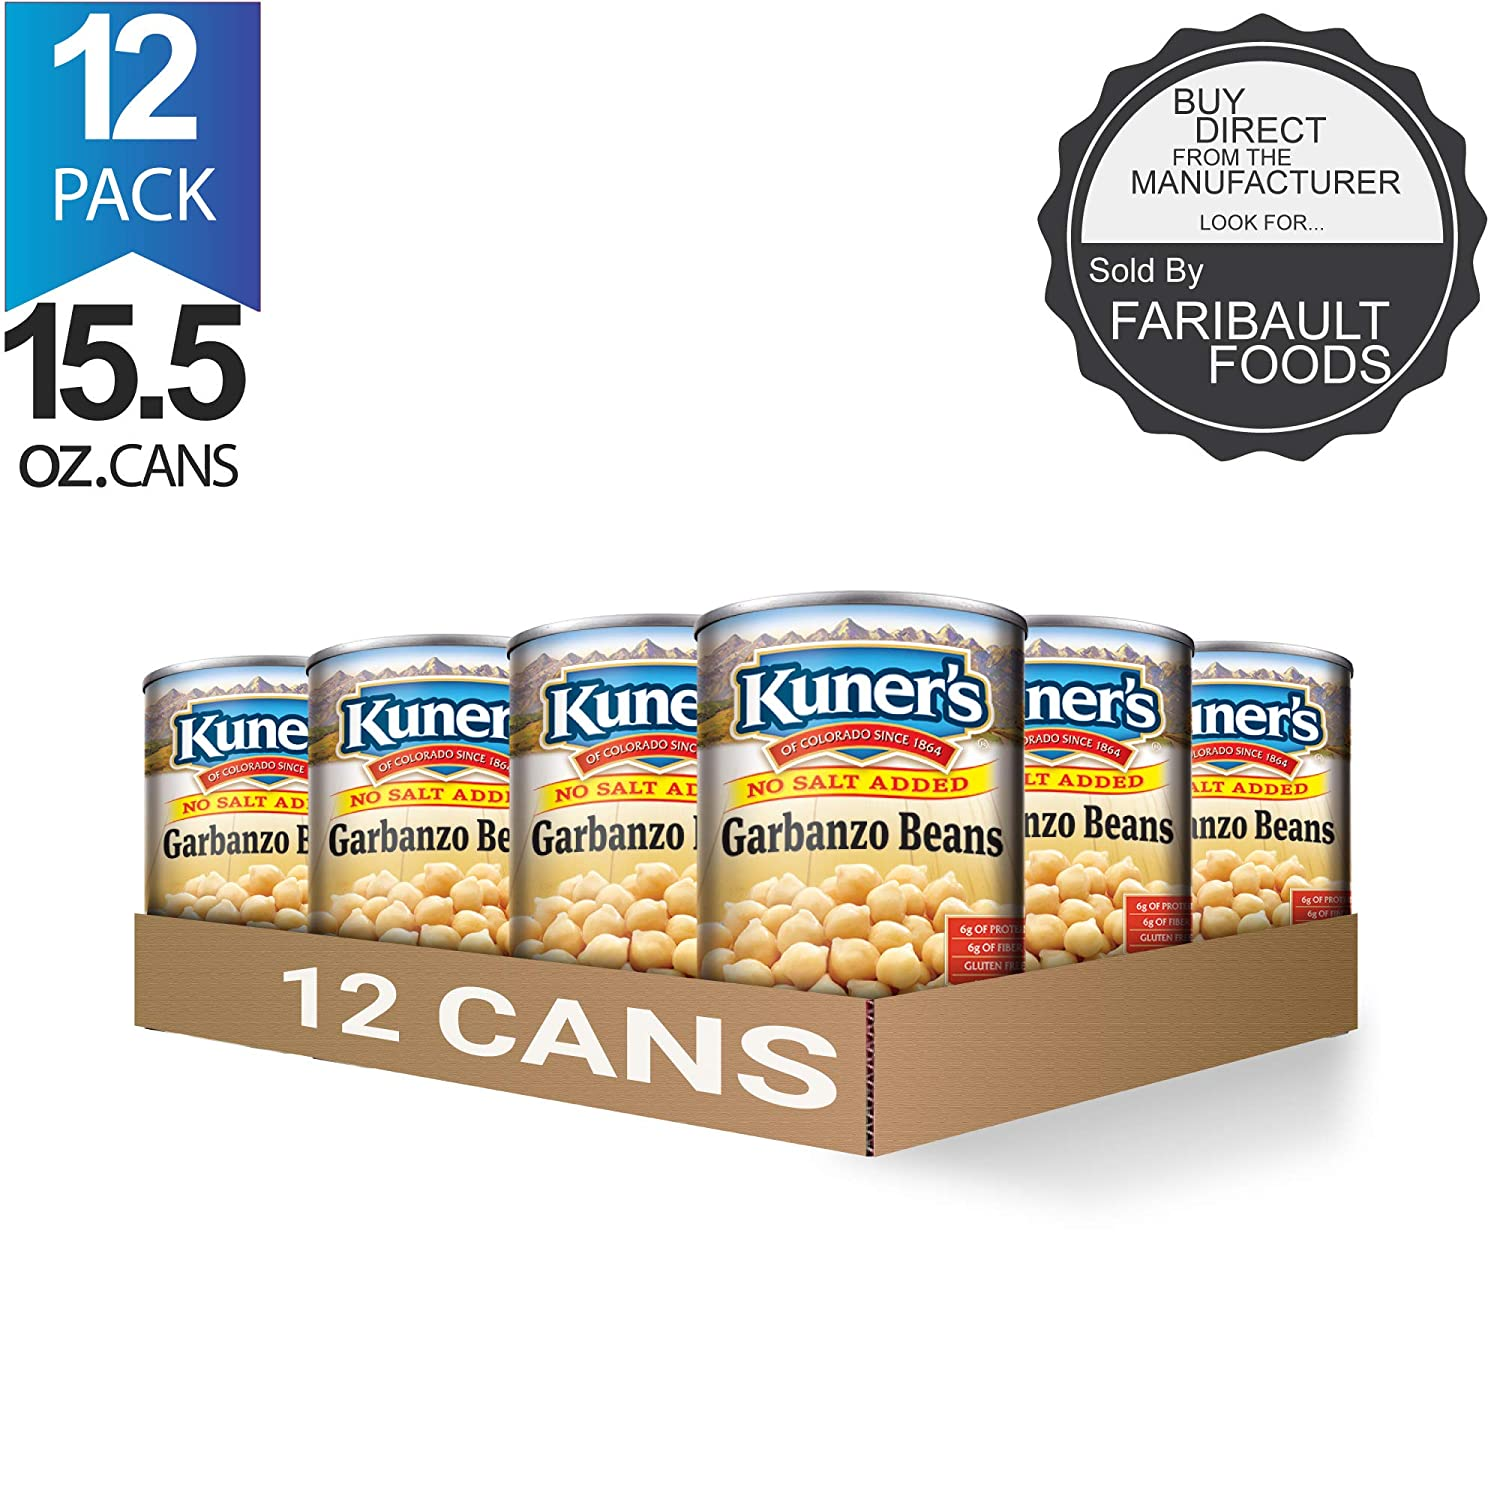 Kuner's • Canned Garbanzo Beans, (12 Pack), No Salt Added Chickpeas, Vegan, Non-GMO, Natural Gluten-Free Bean, Sourced and Packaged in the USA, 15 Ounce Can